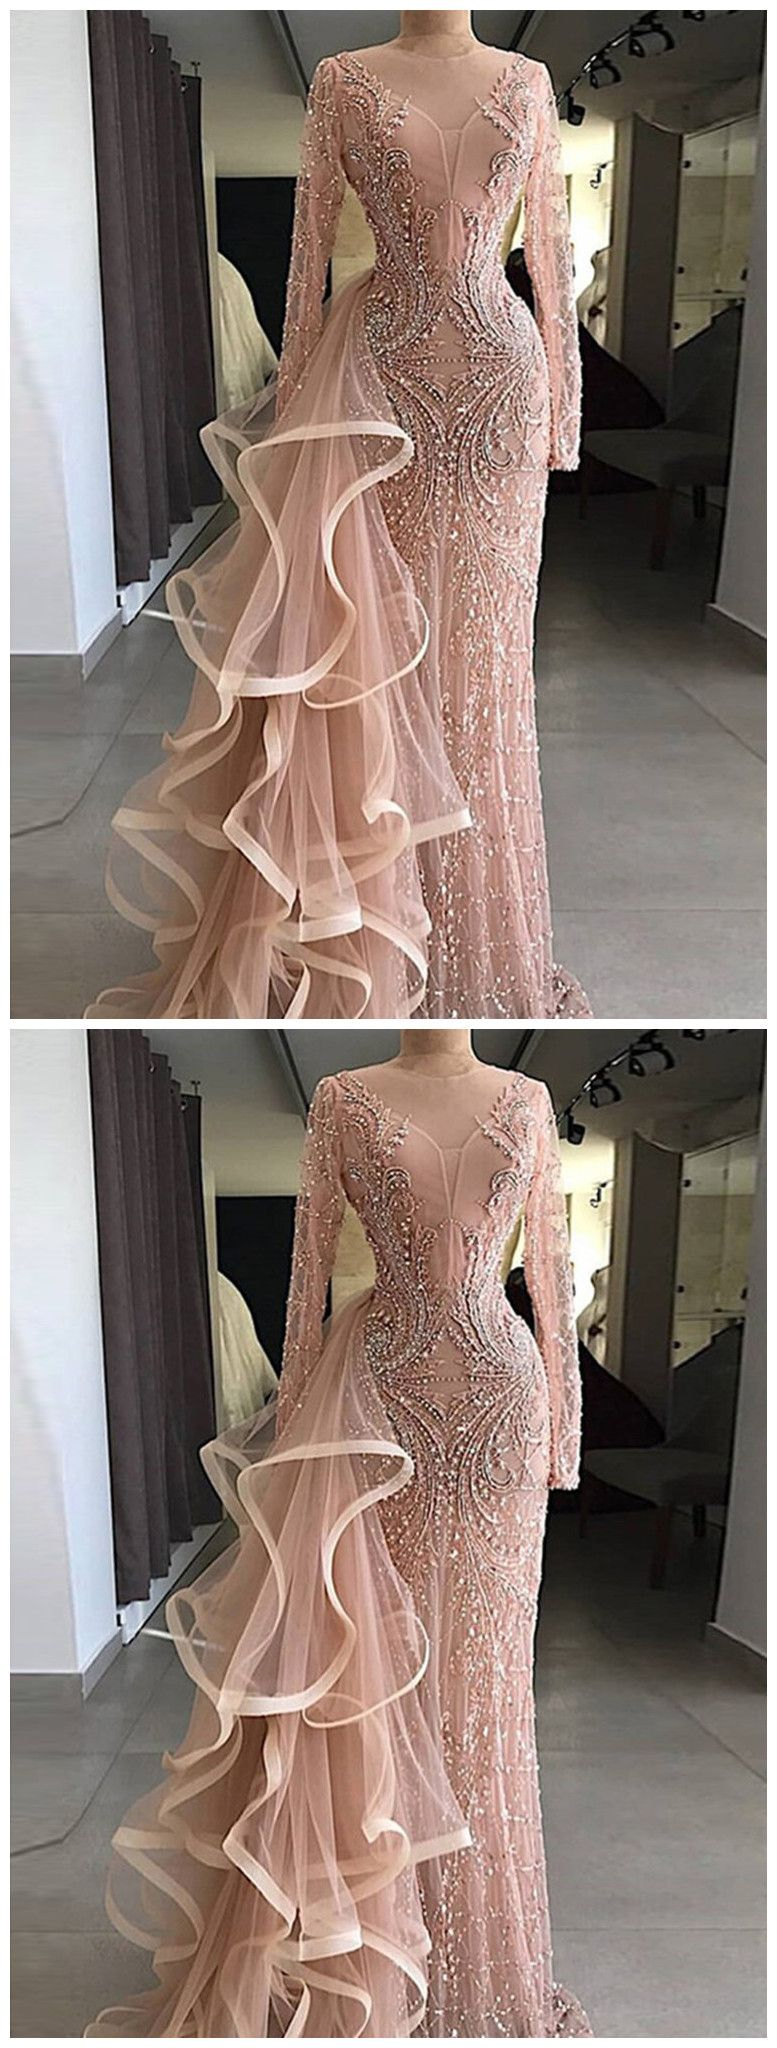 95bdeeed869 Chic Mermaid Sparkly Prom Dress With Beading Long Sleeve Prom ...